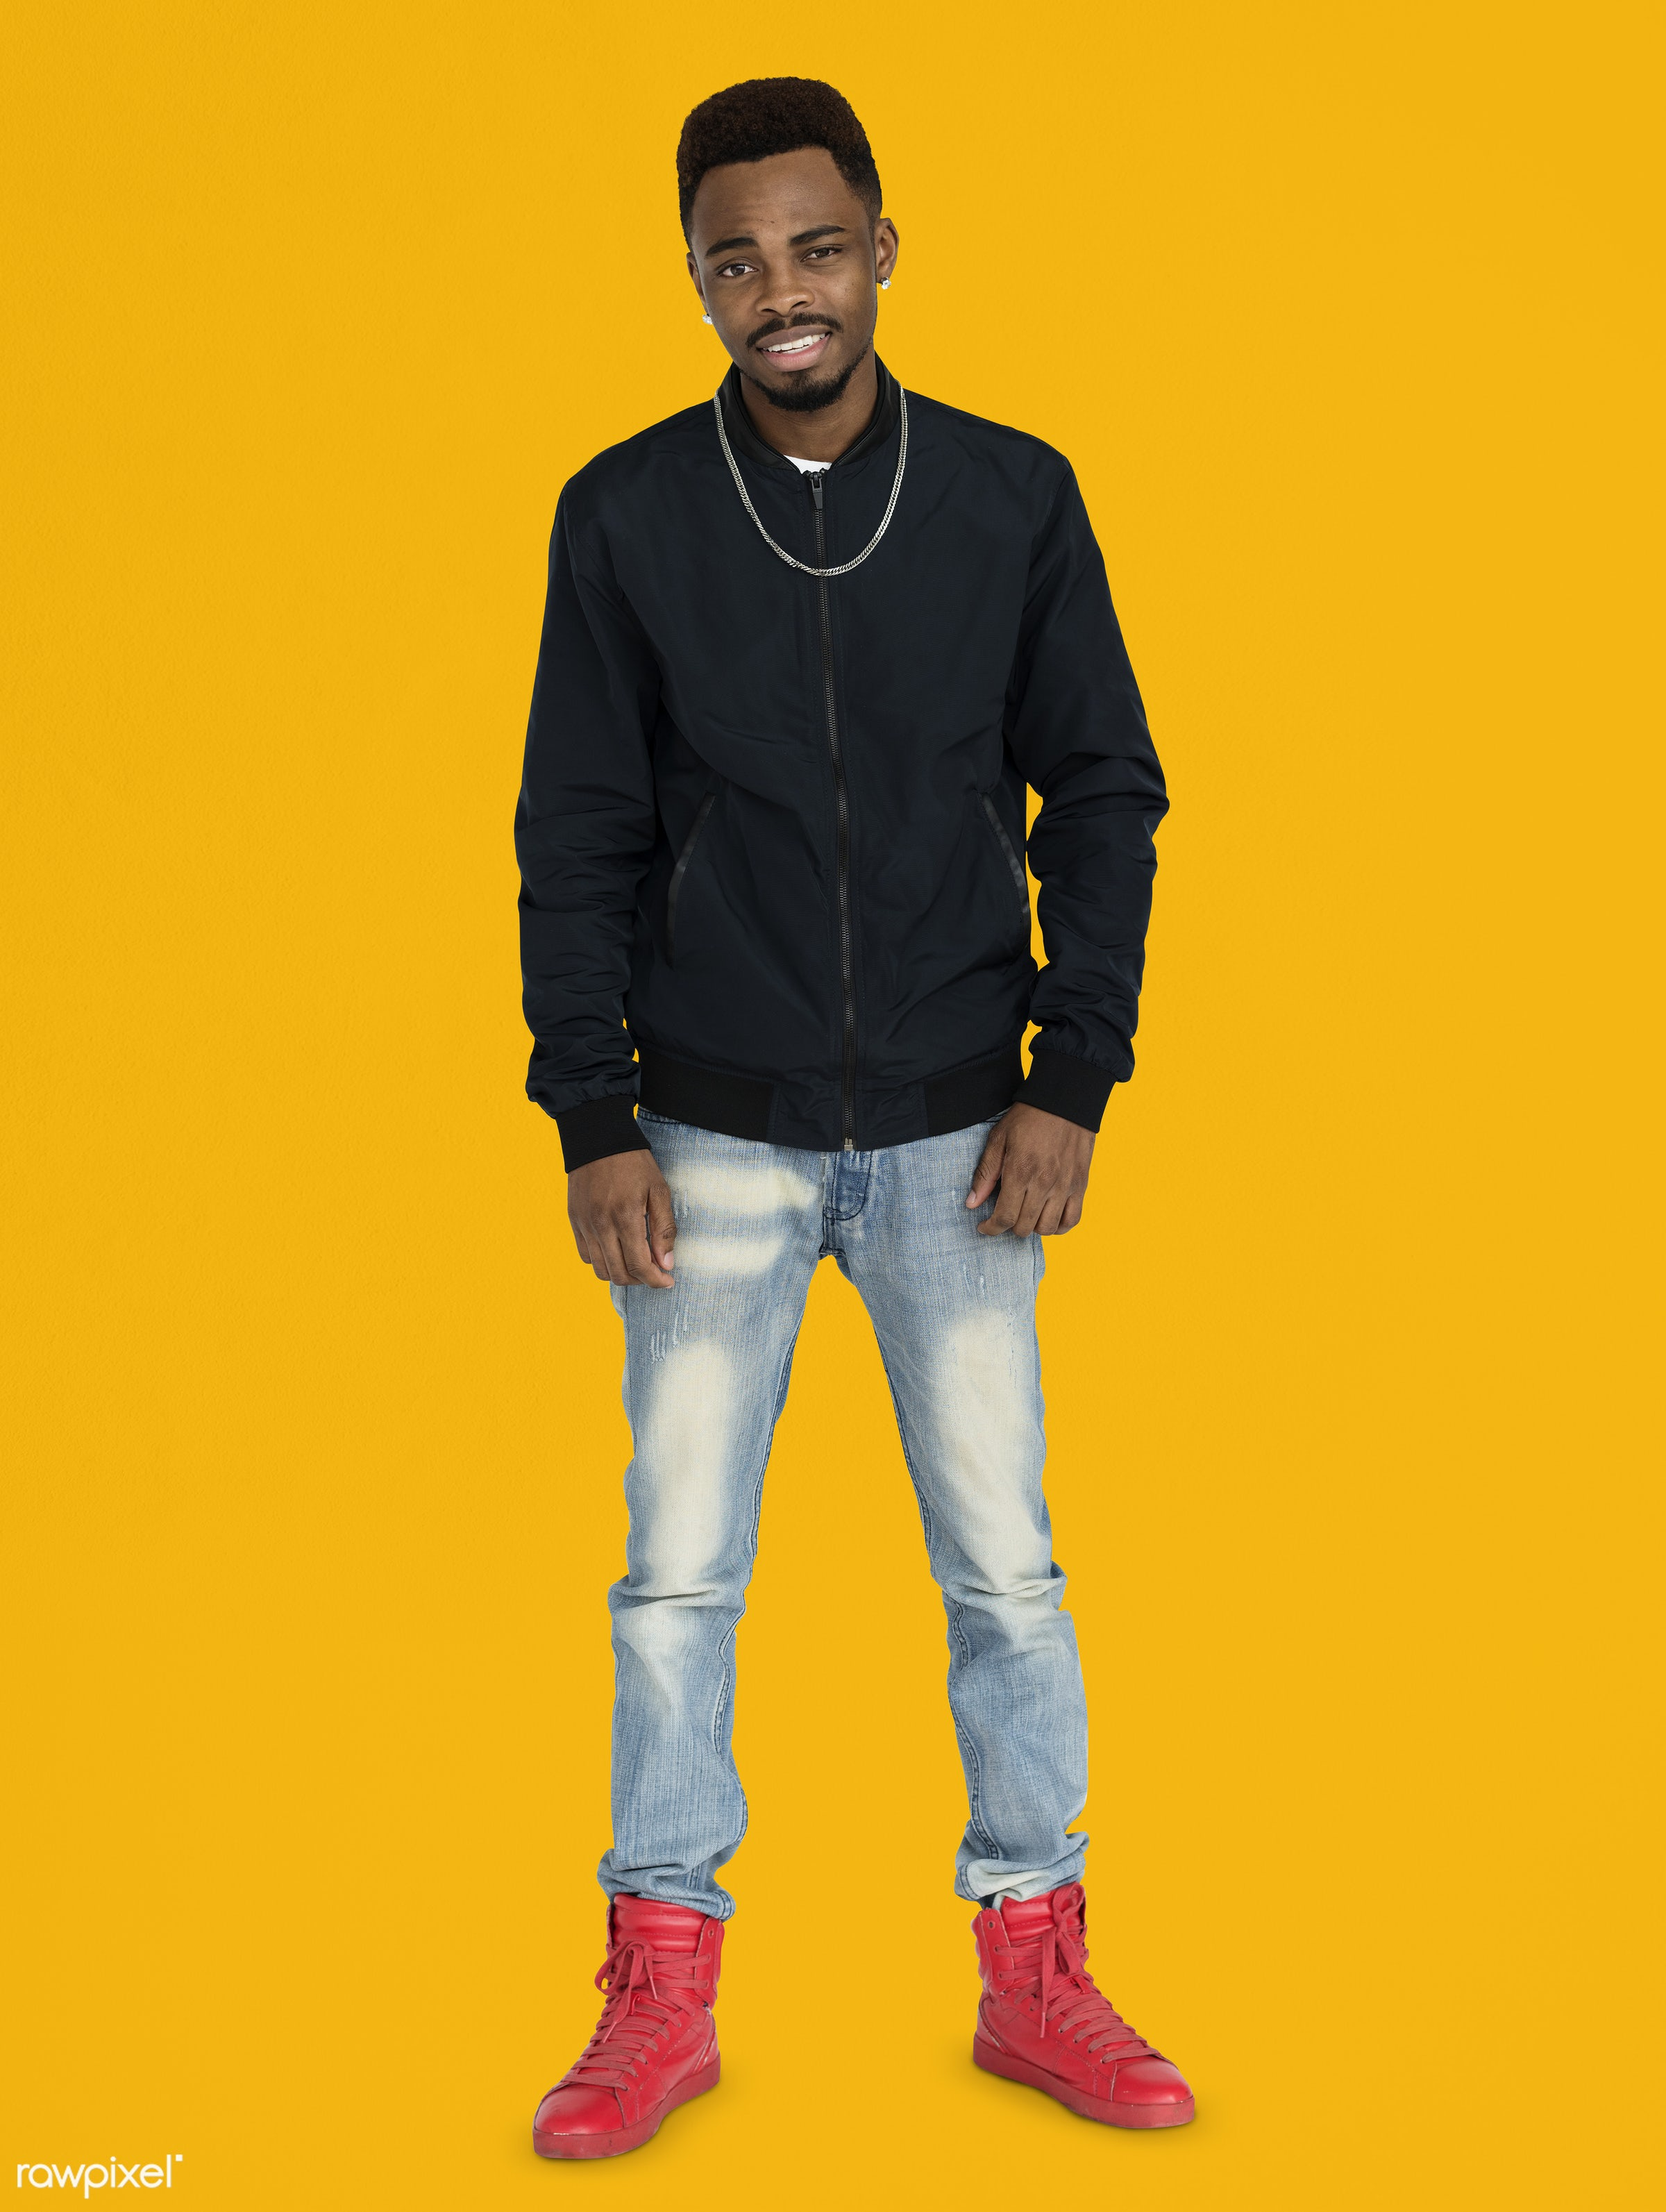 studio, expression, face, person, joy, yellow, people, style, solo, fresh, happy, casual, smile, cheerful, man, smiling,...